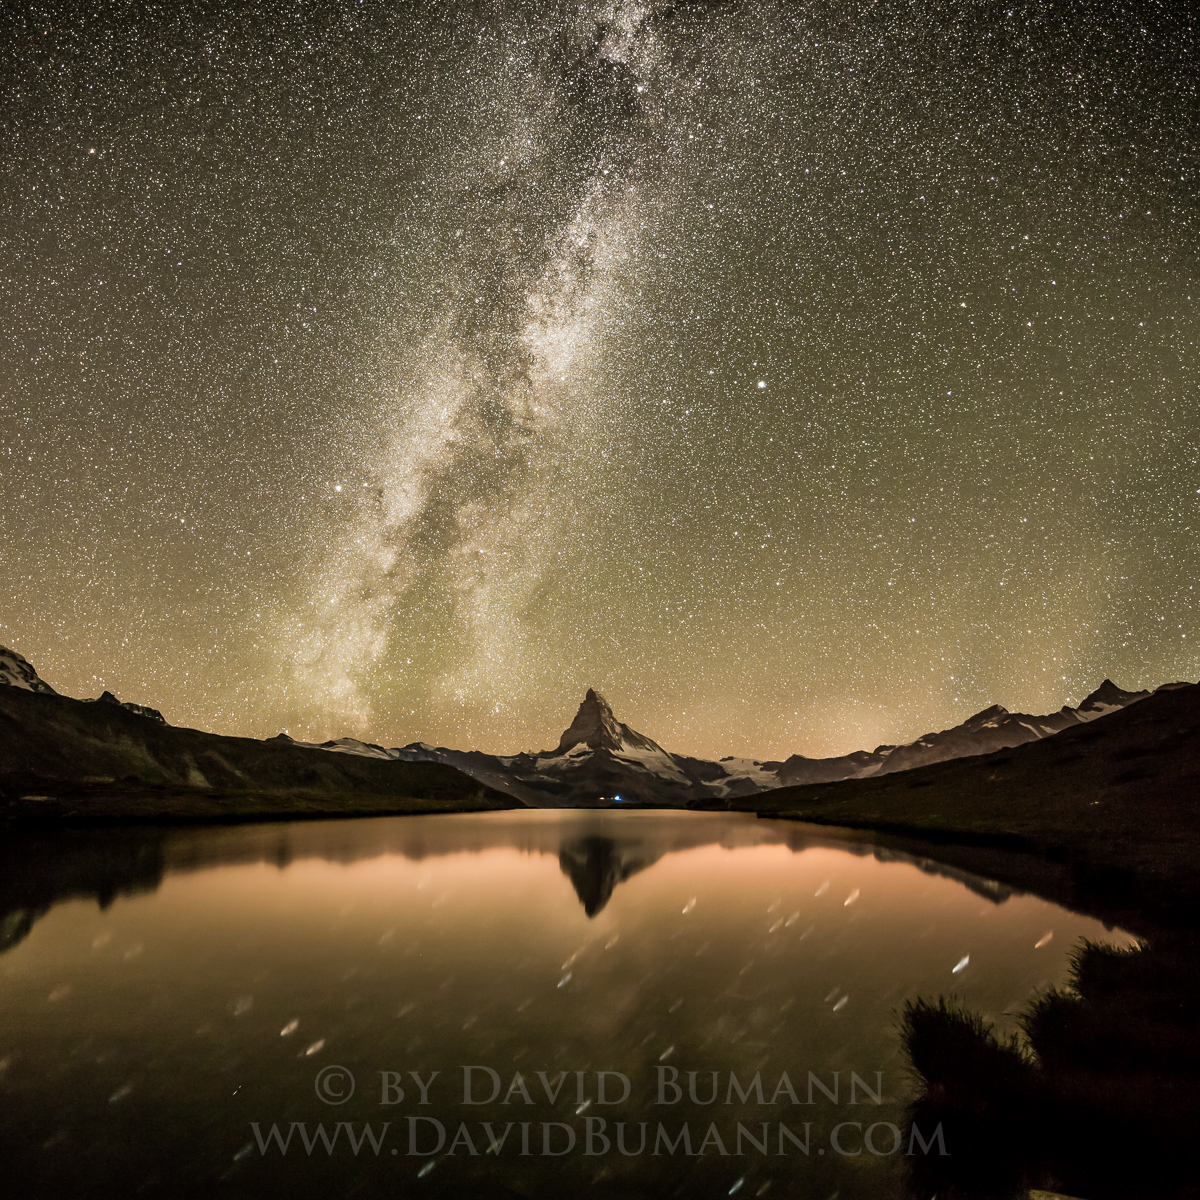 Cosmic Mirror - Matterhorn's Reflect